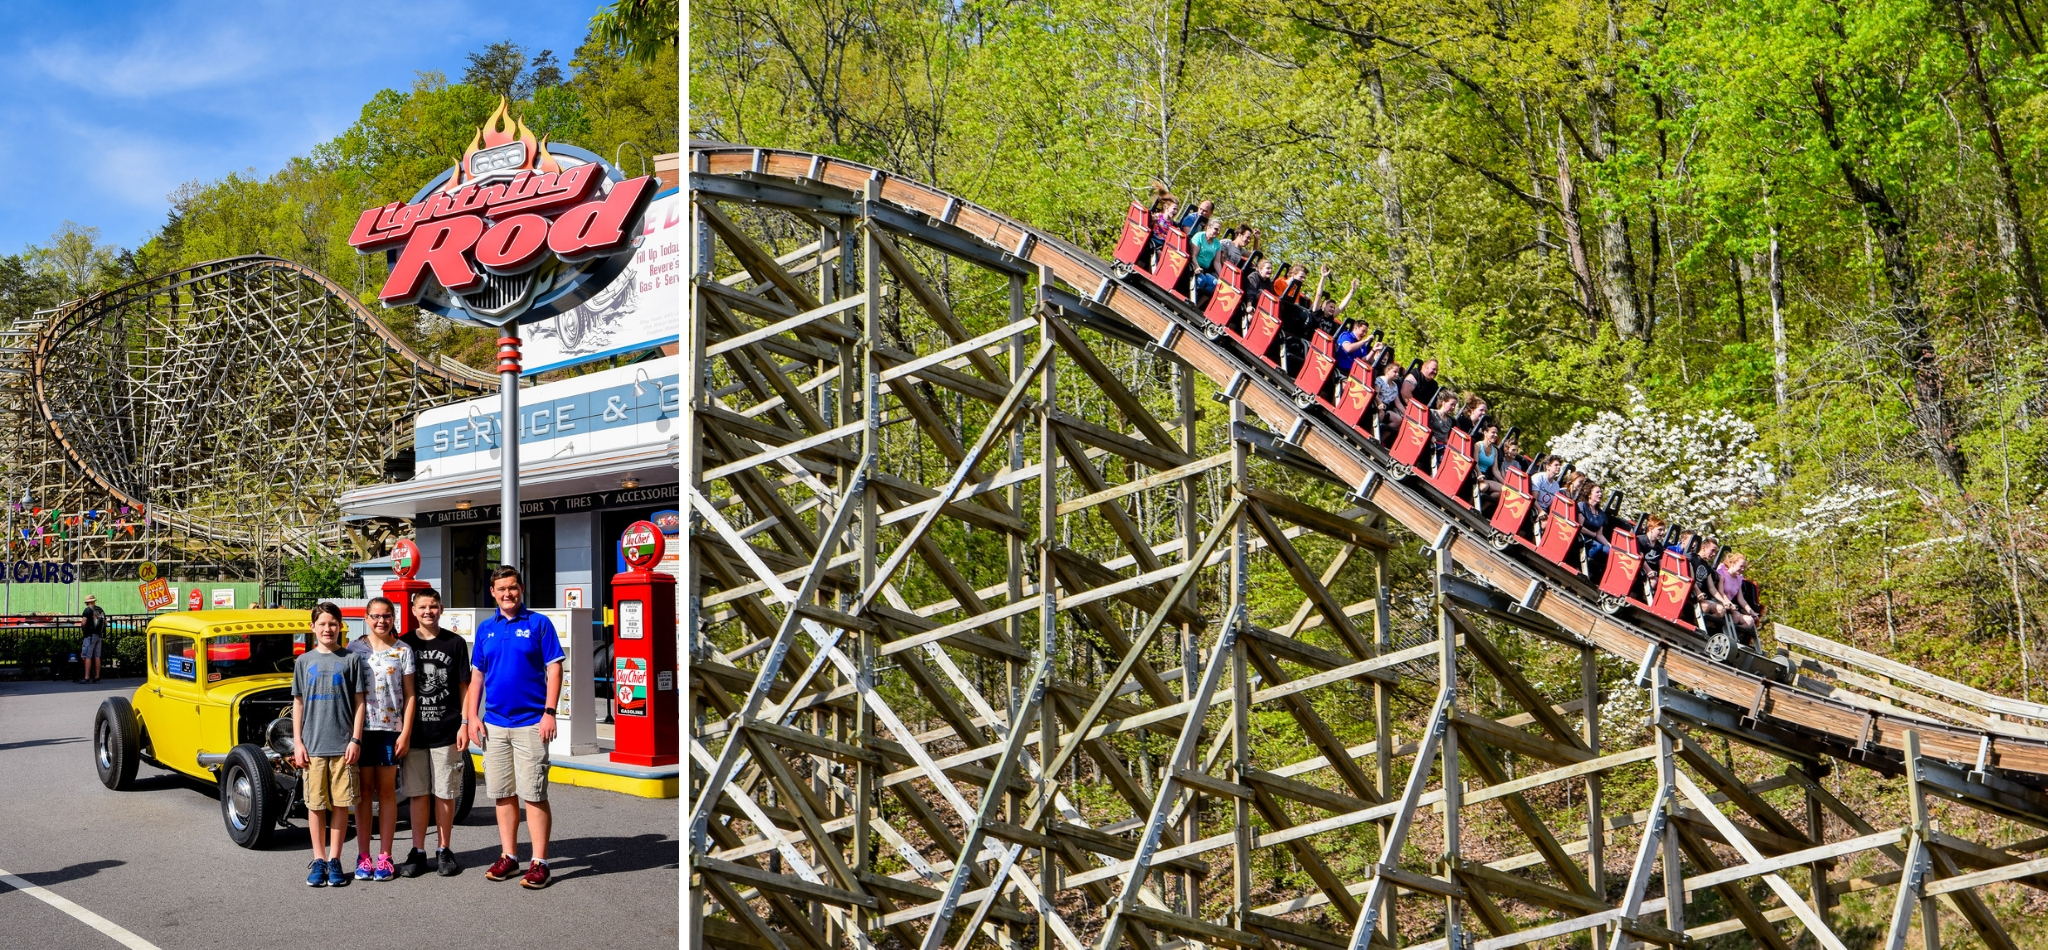 Dollywood for Families | Pigeon Forge, TN